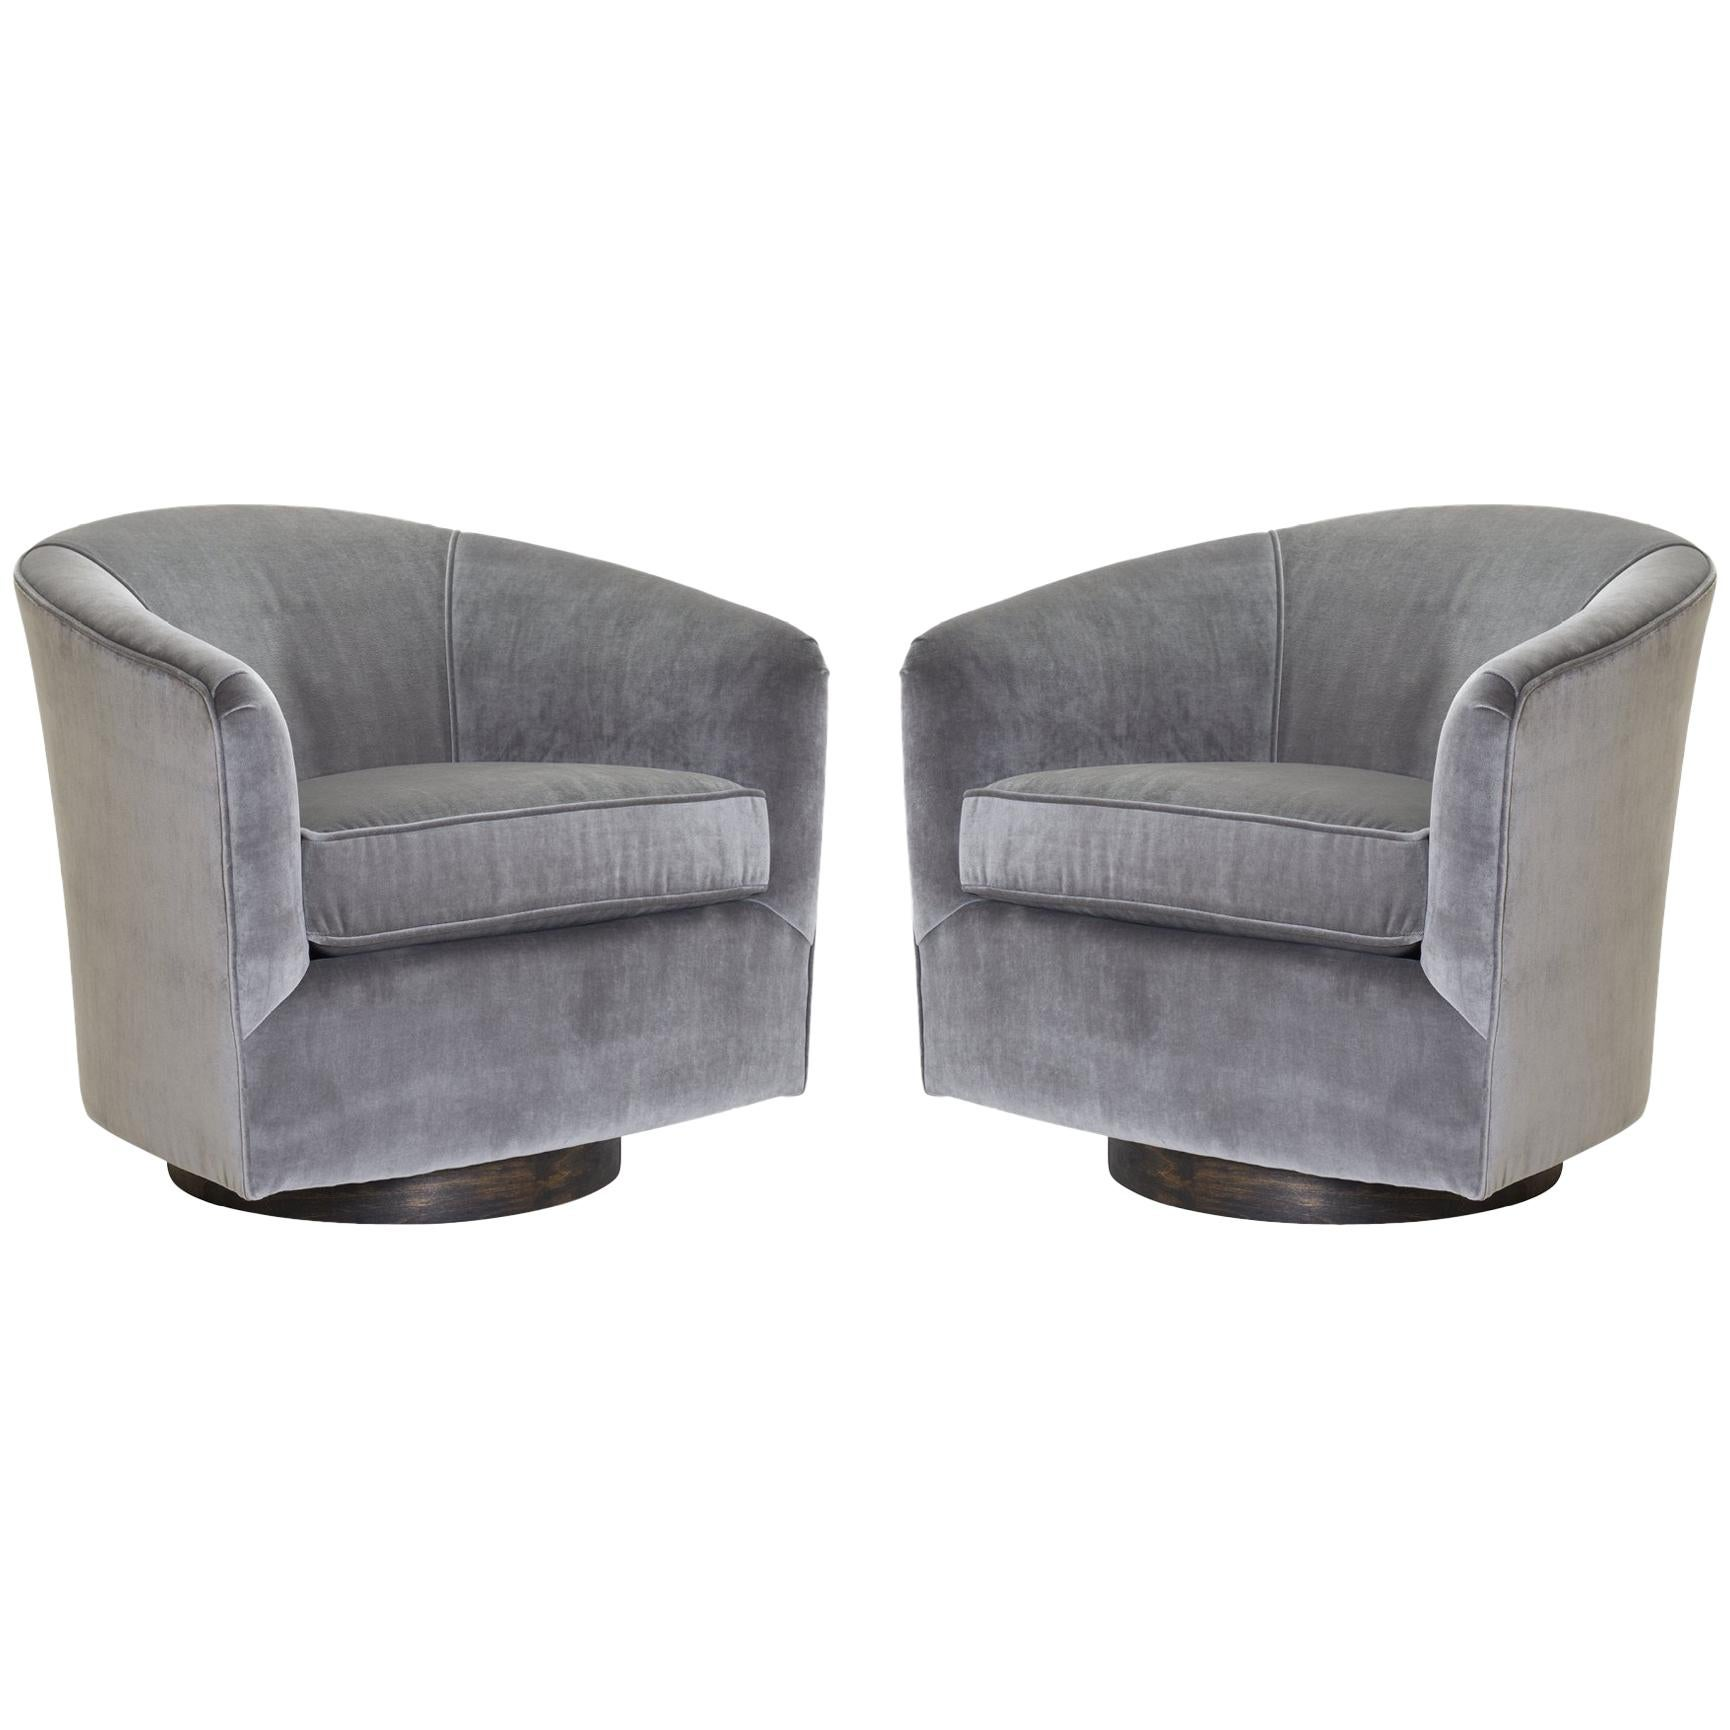 Astounding Swivel Tub Chairs In Camel Velvet With Polished Brass Bases Pair Pabps2019 Chair Design Images Pabps2019Com